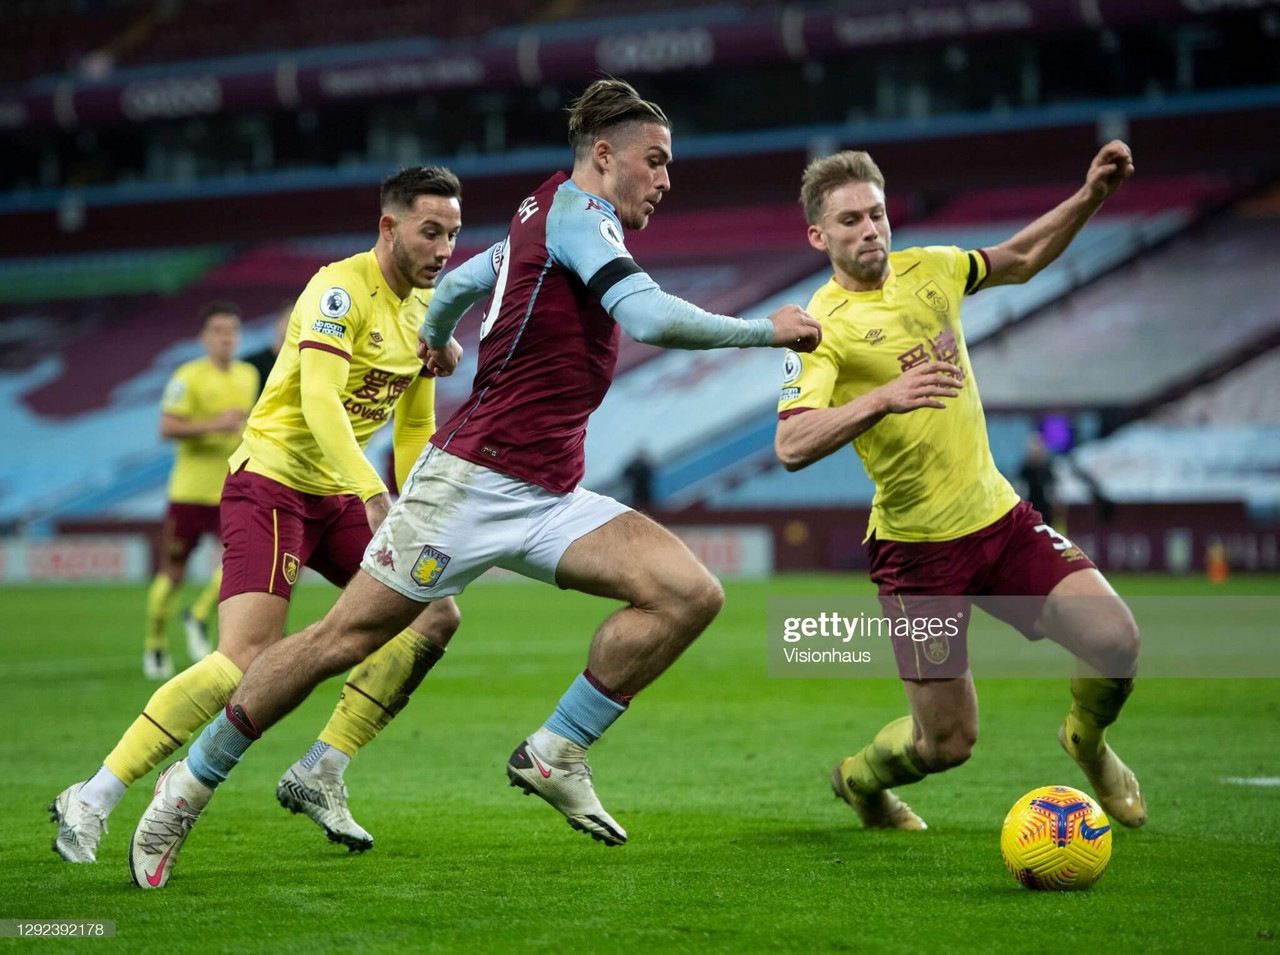 Burnley vs Aston Villa preview: How to watch, kick-off time, team news, predicted lineups and ones to watch